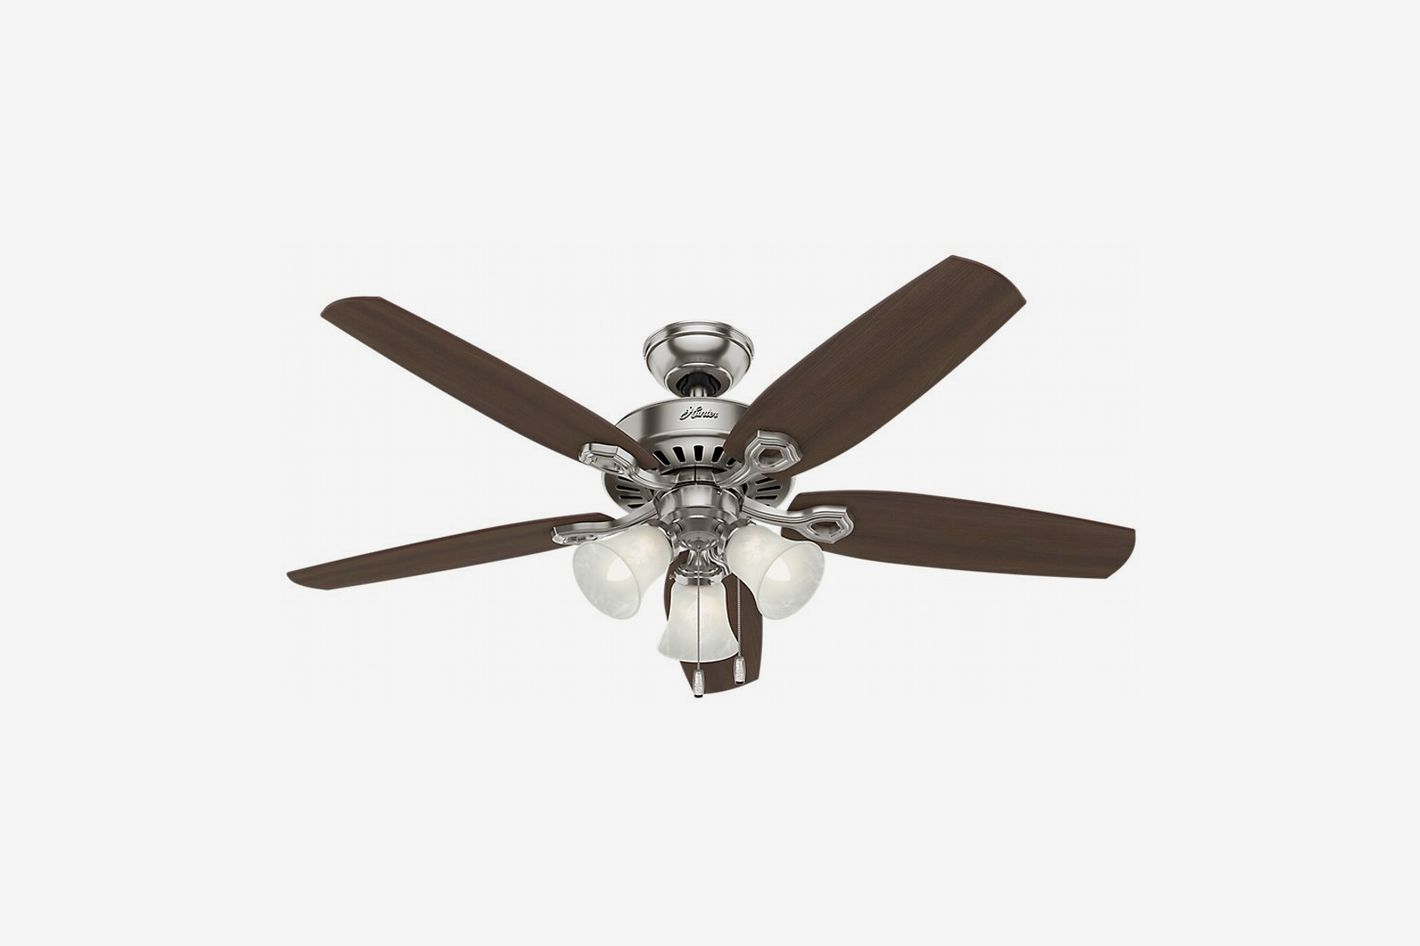 Hunter Fans 53237 Ceiling Fan with Brazilian Cherry/Harvest Mahogany Blades and Swirled Marble Glass Light Kit, Brushed Nickel, 52-Inch